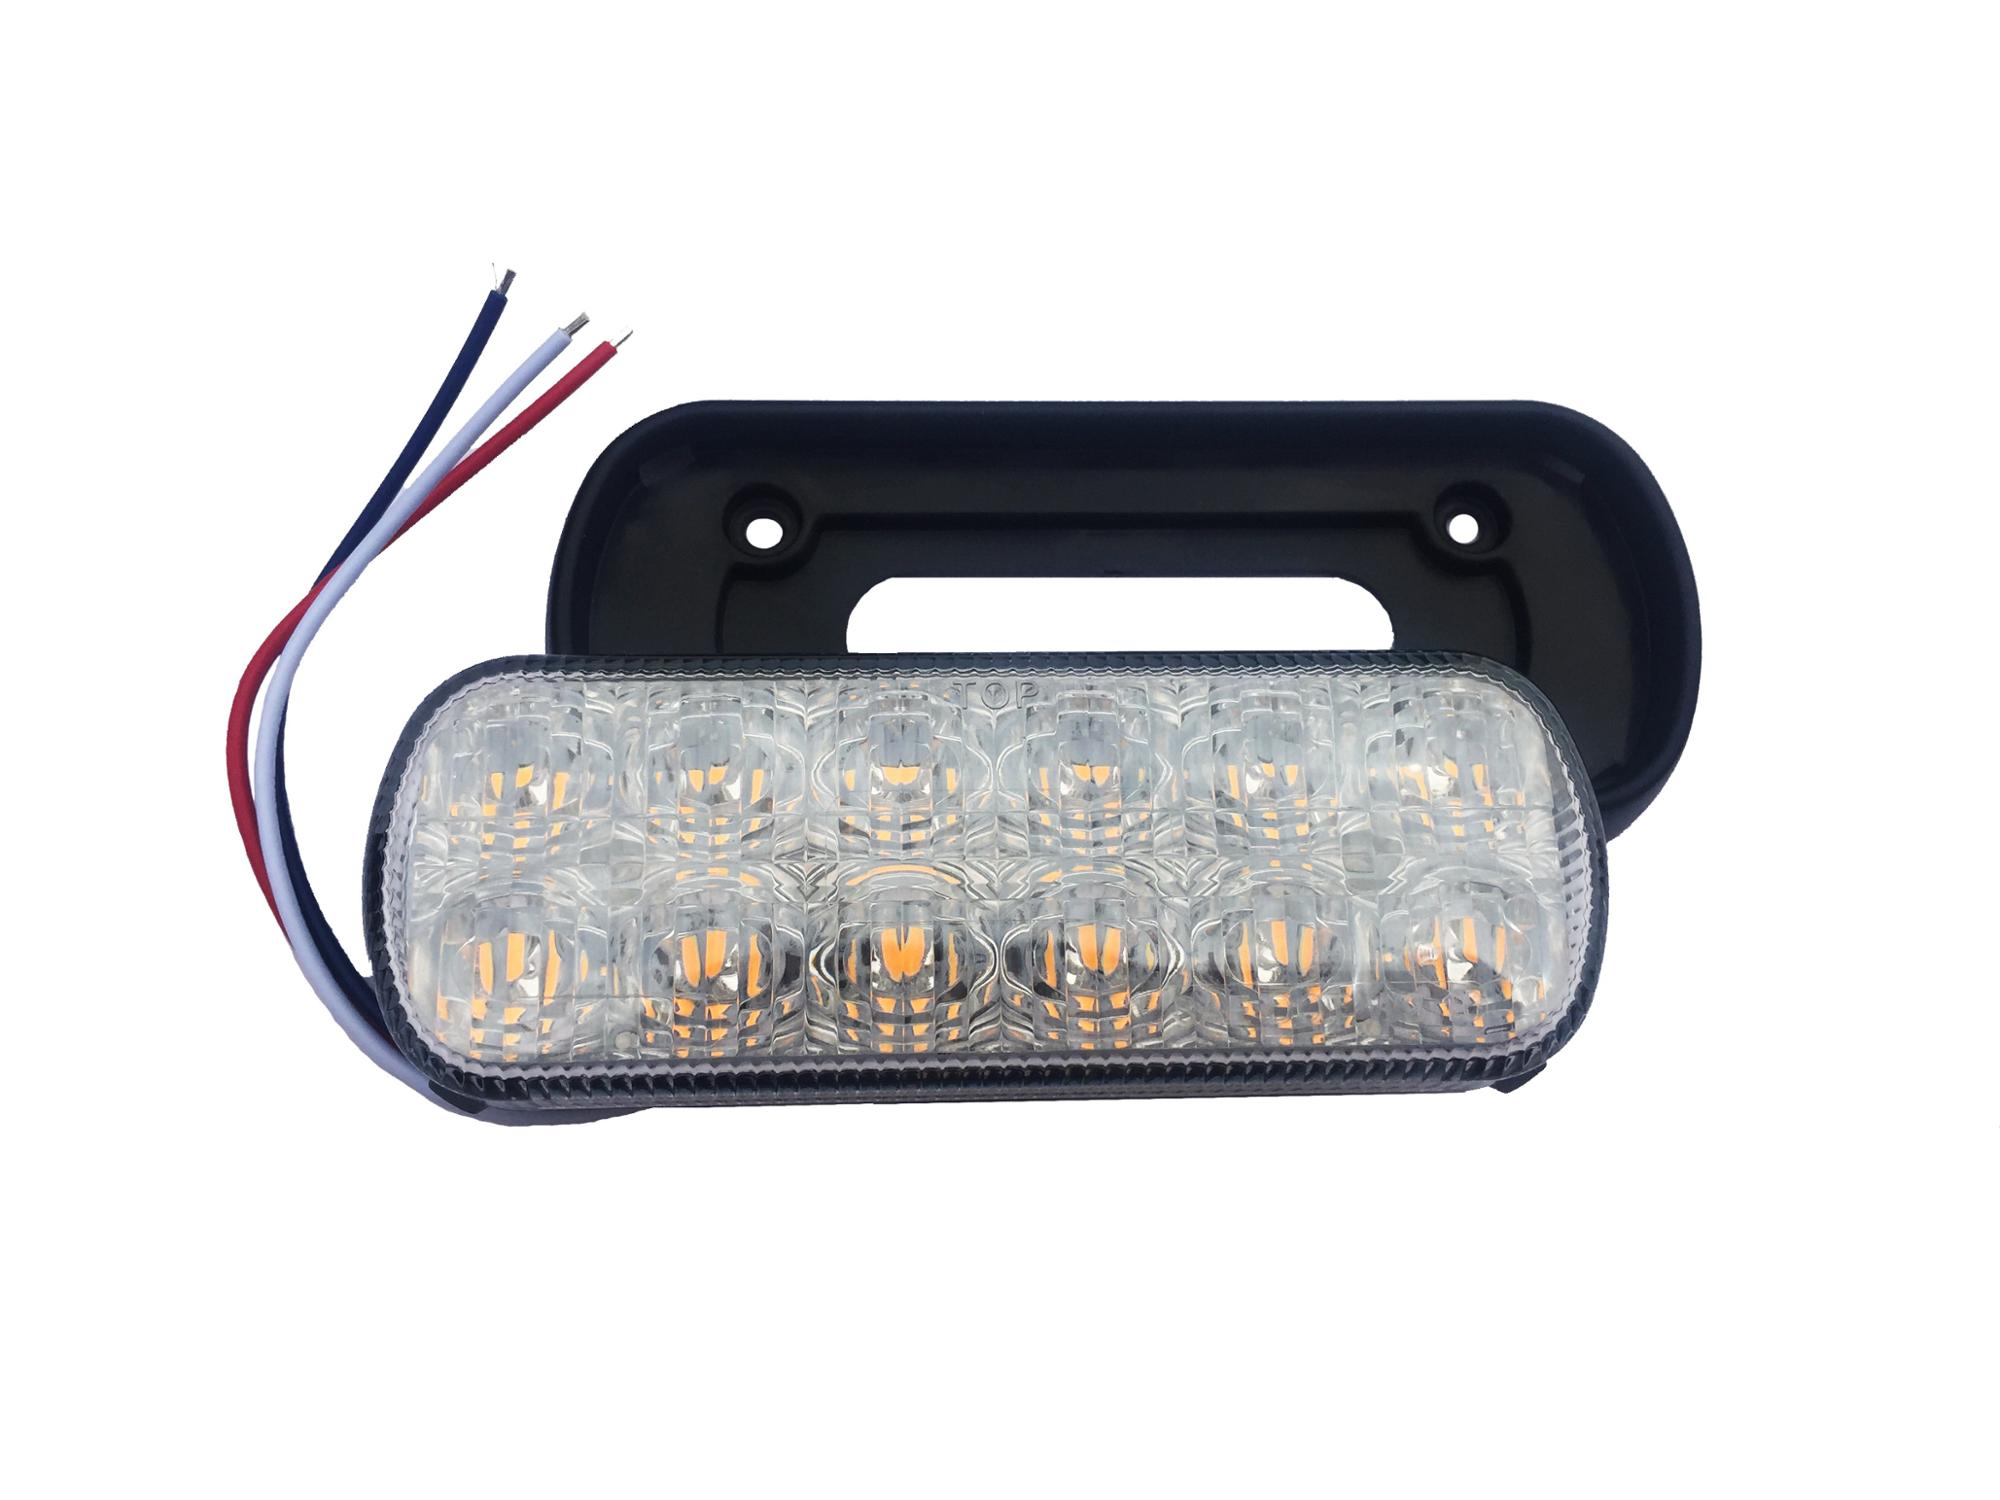 Law Enforcement Emergency Hazard Warning Strobe Lights For Truck Car Warning Snow Plow Safety Flashing Strobe Light